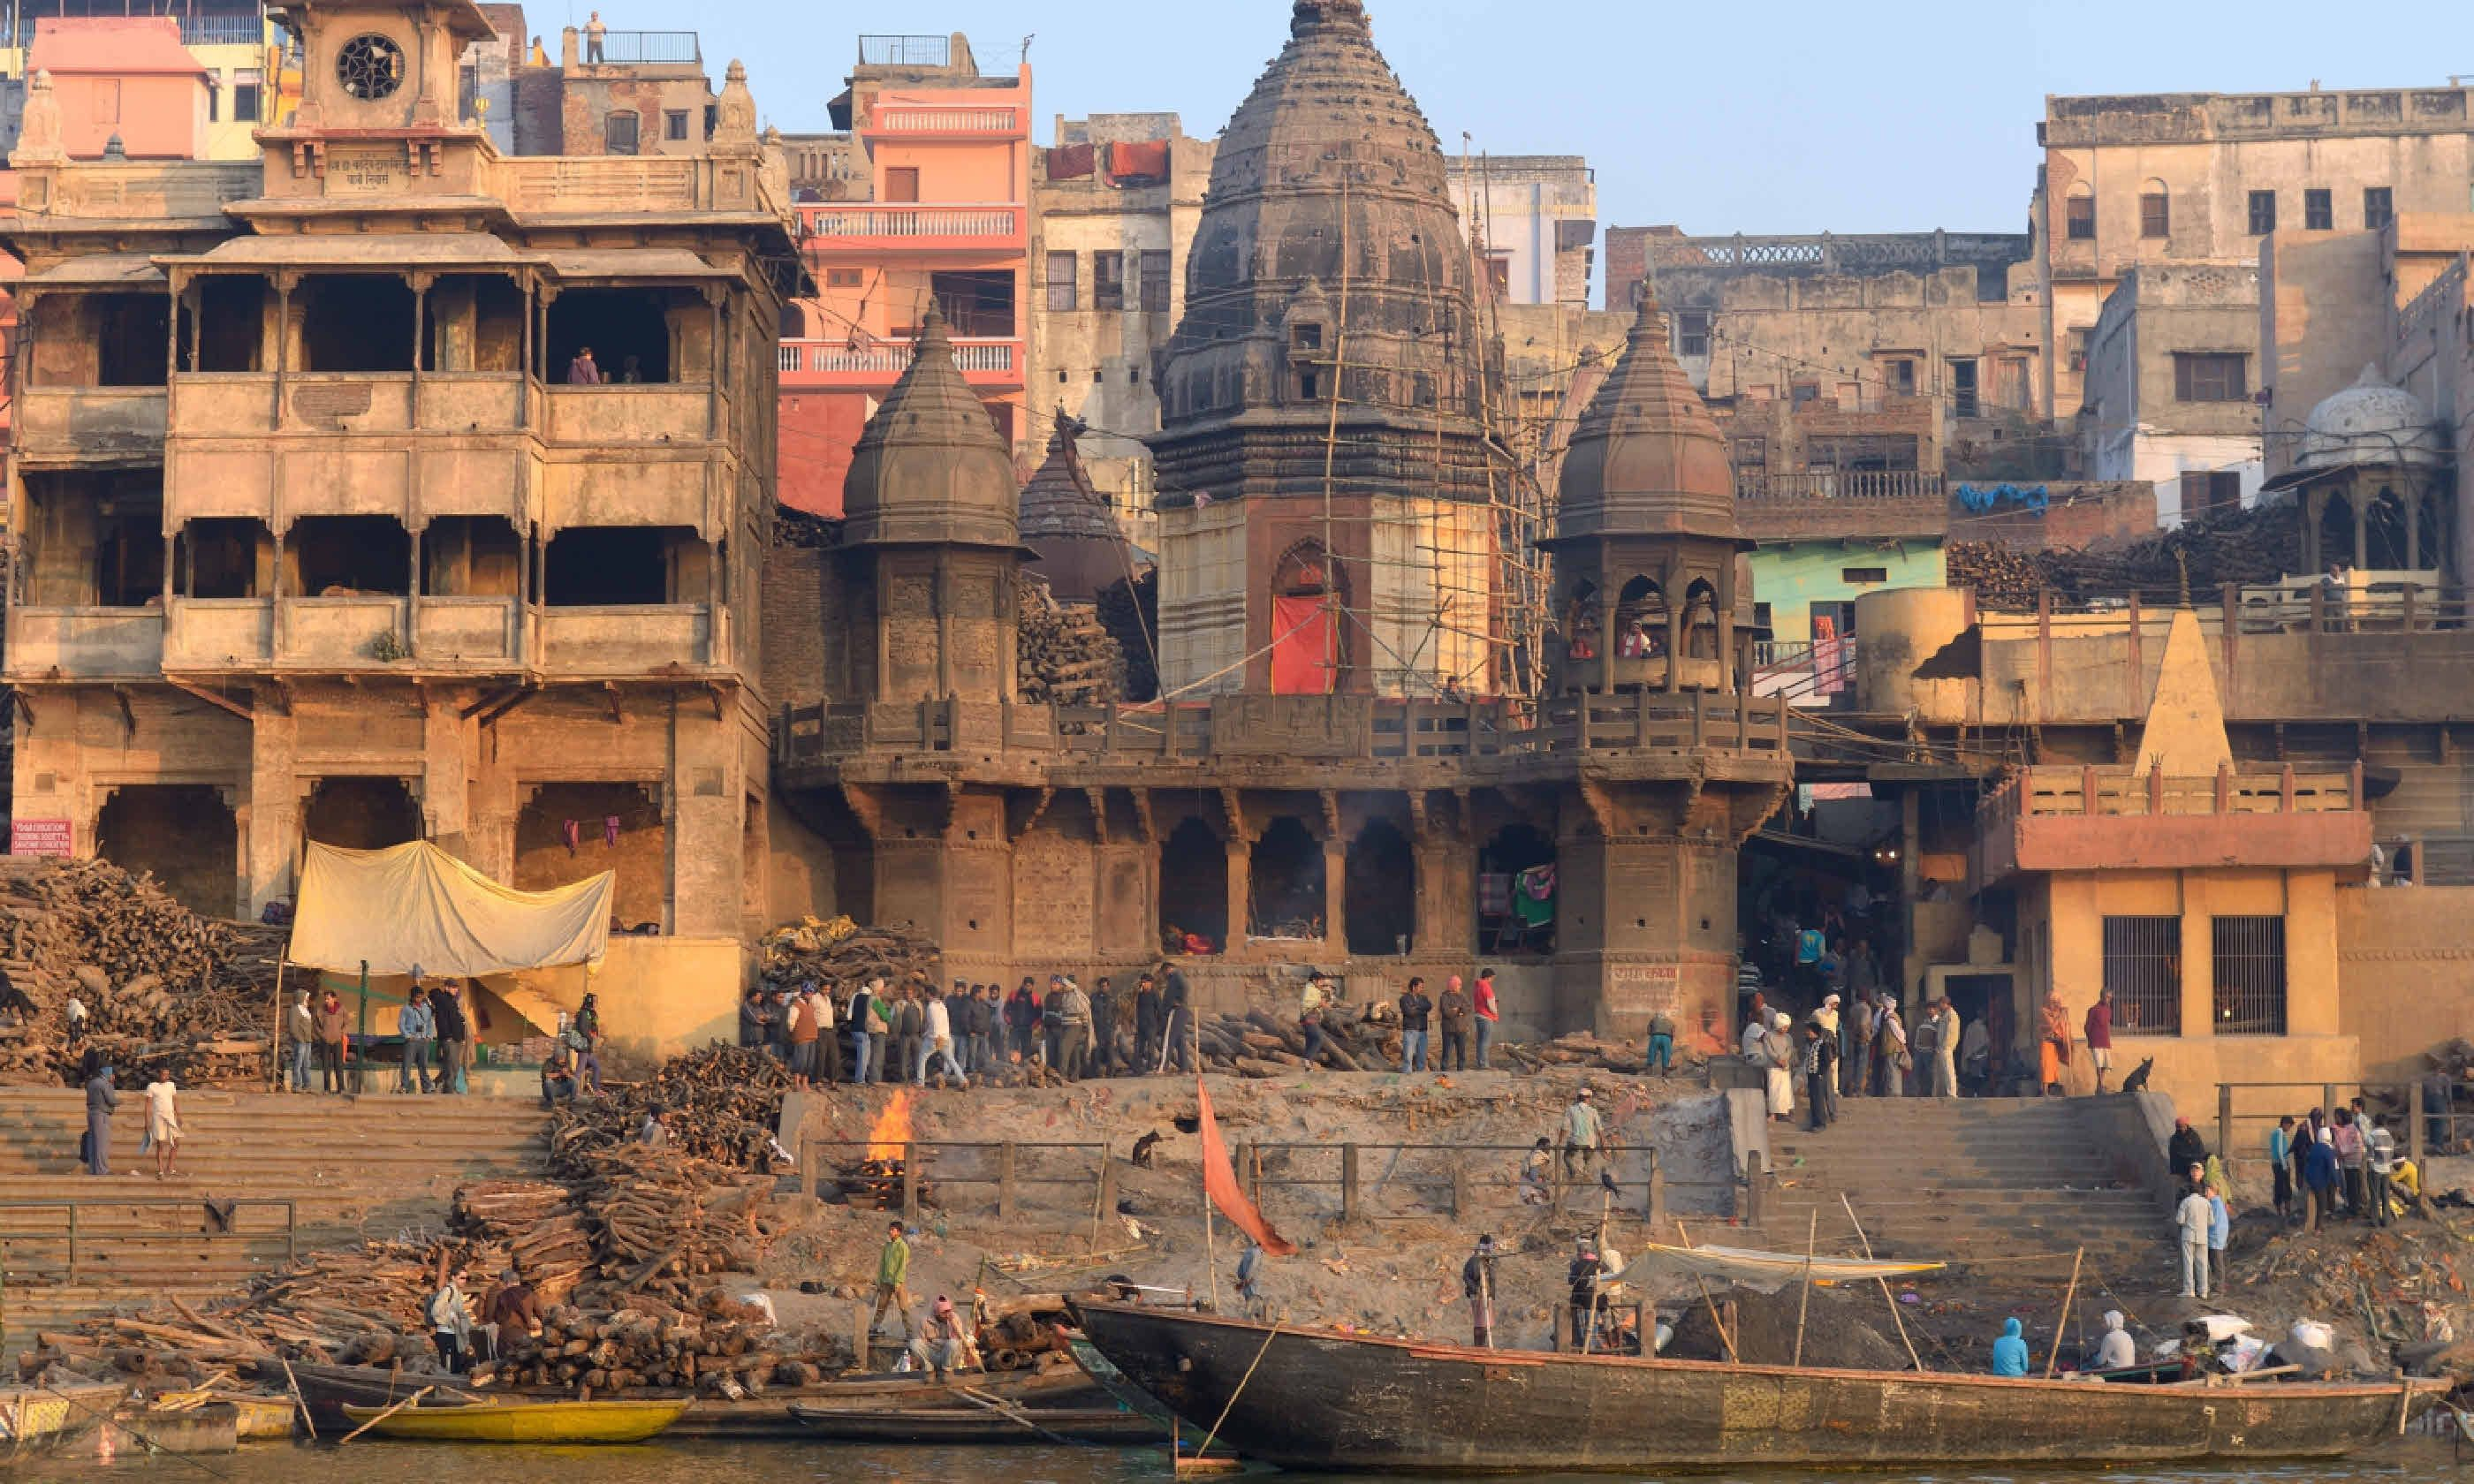 Ganges River at Manikarnika Ghat (Shutterstock)